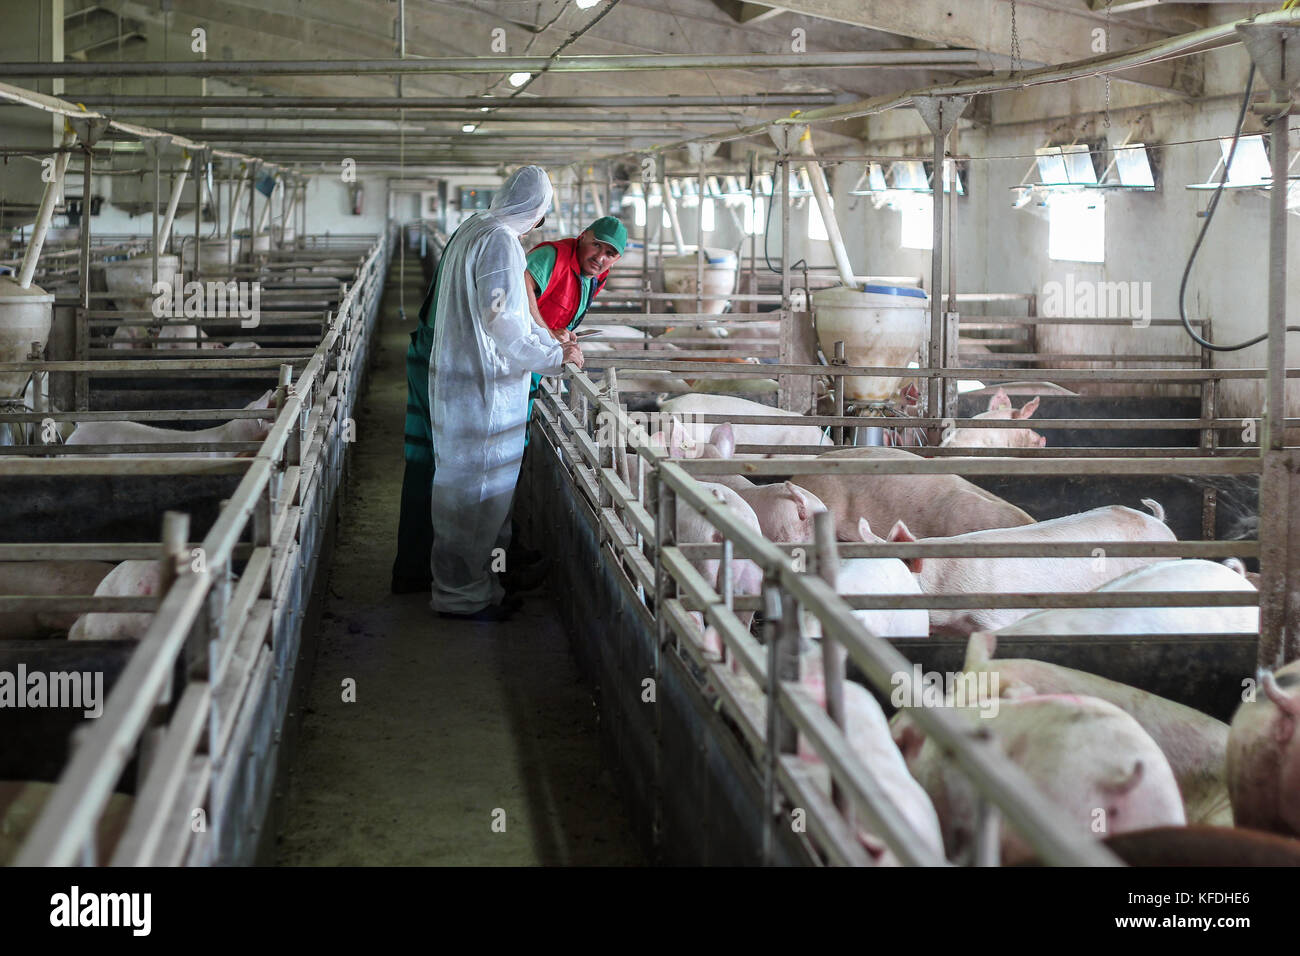 Farmer and veterinarian discussing about animal health on a modern pig farm. Veterinarian doctor examining pigs - Stock Image